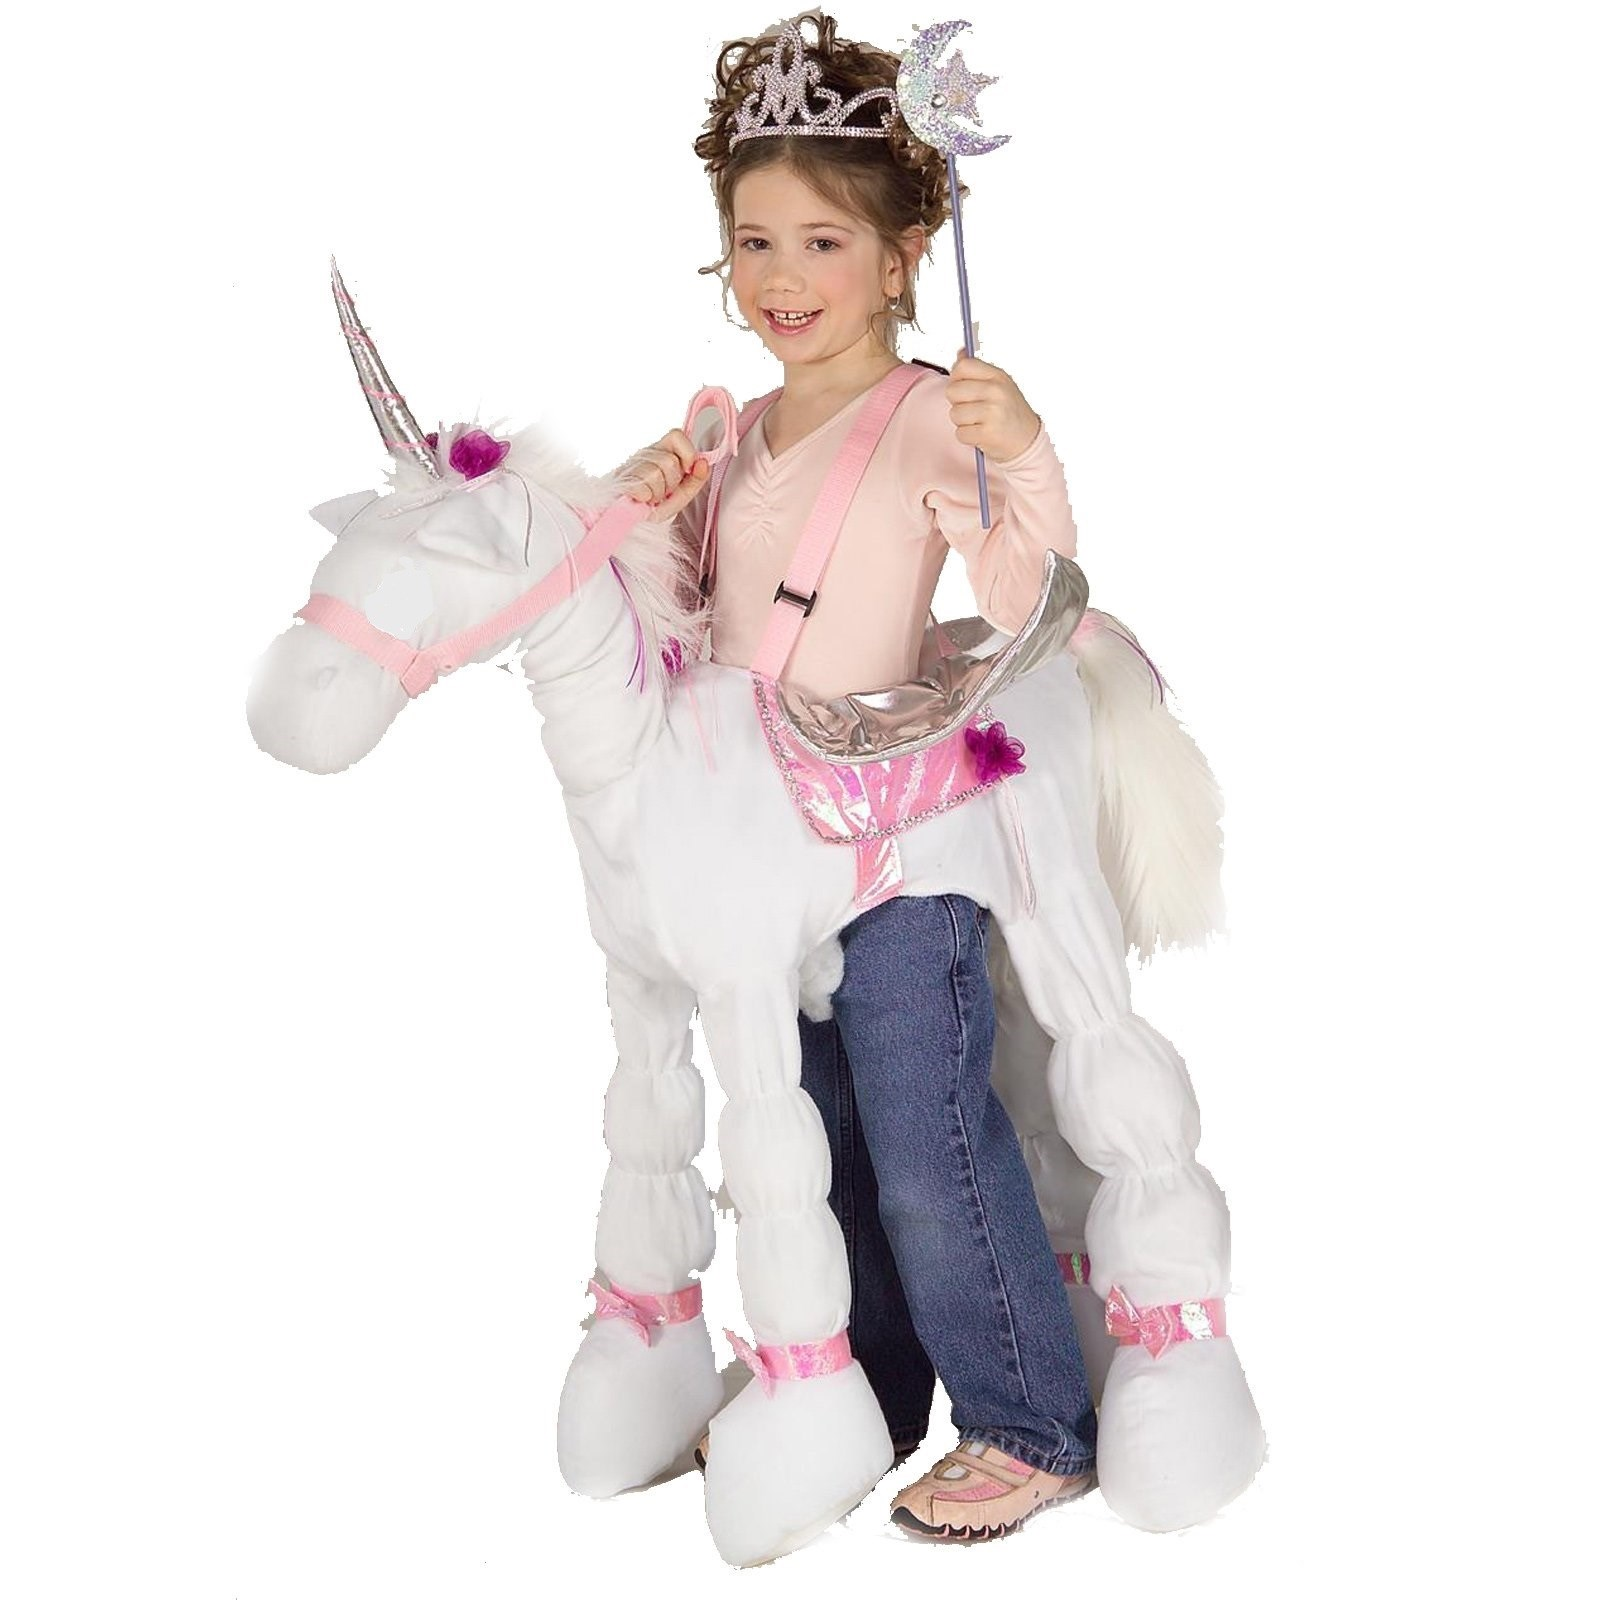 Unicorn Costumes For Kids For Halloween Or Dress Up